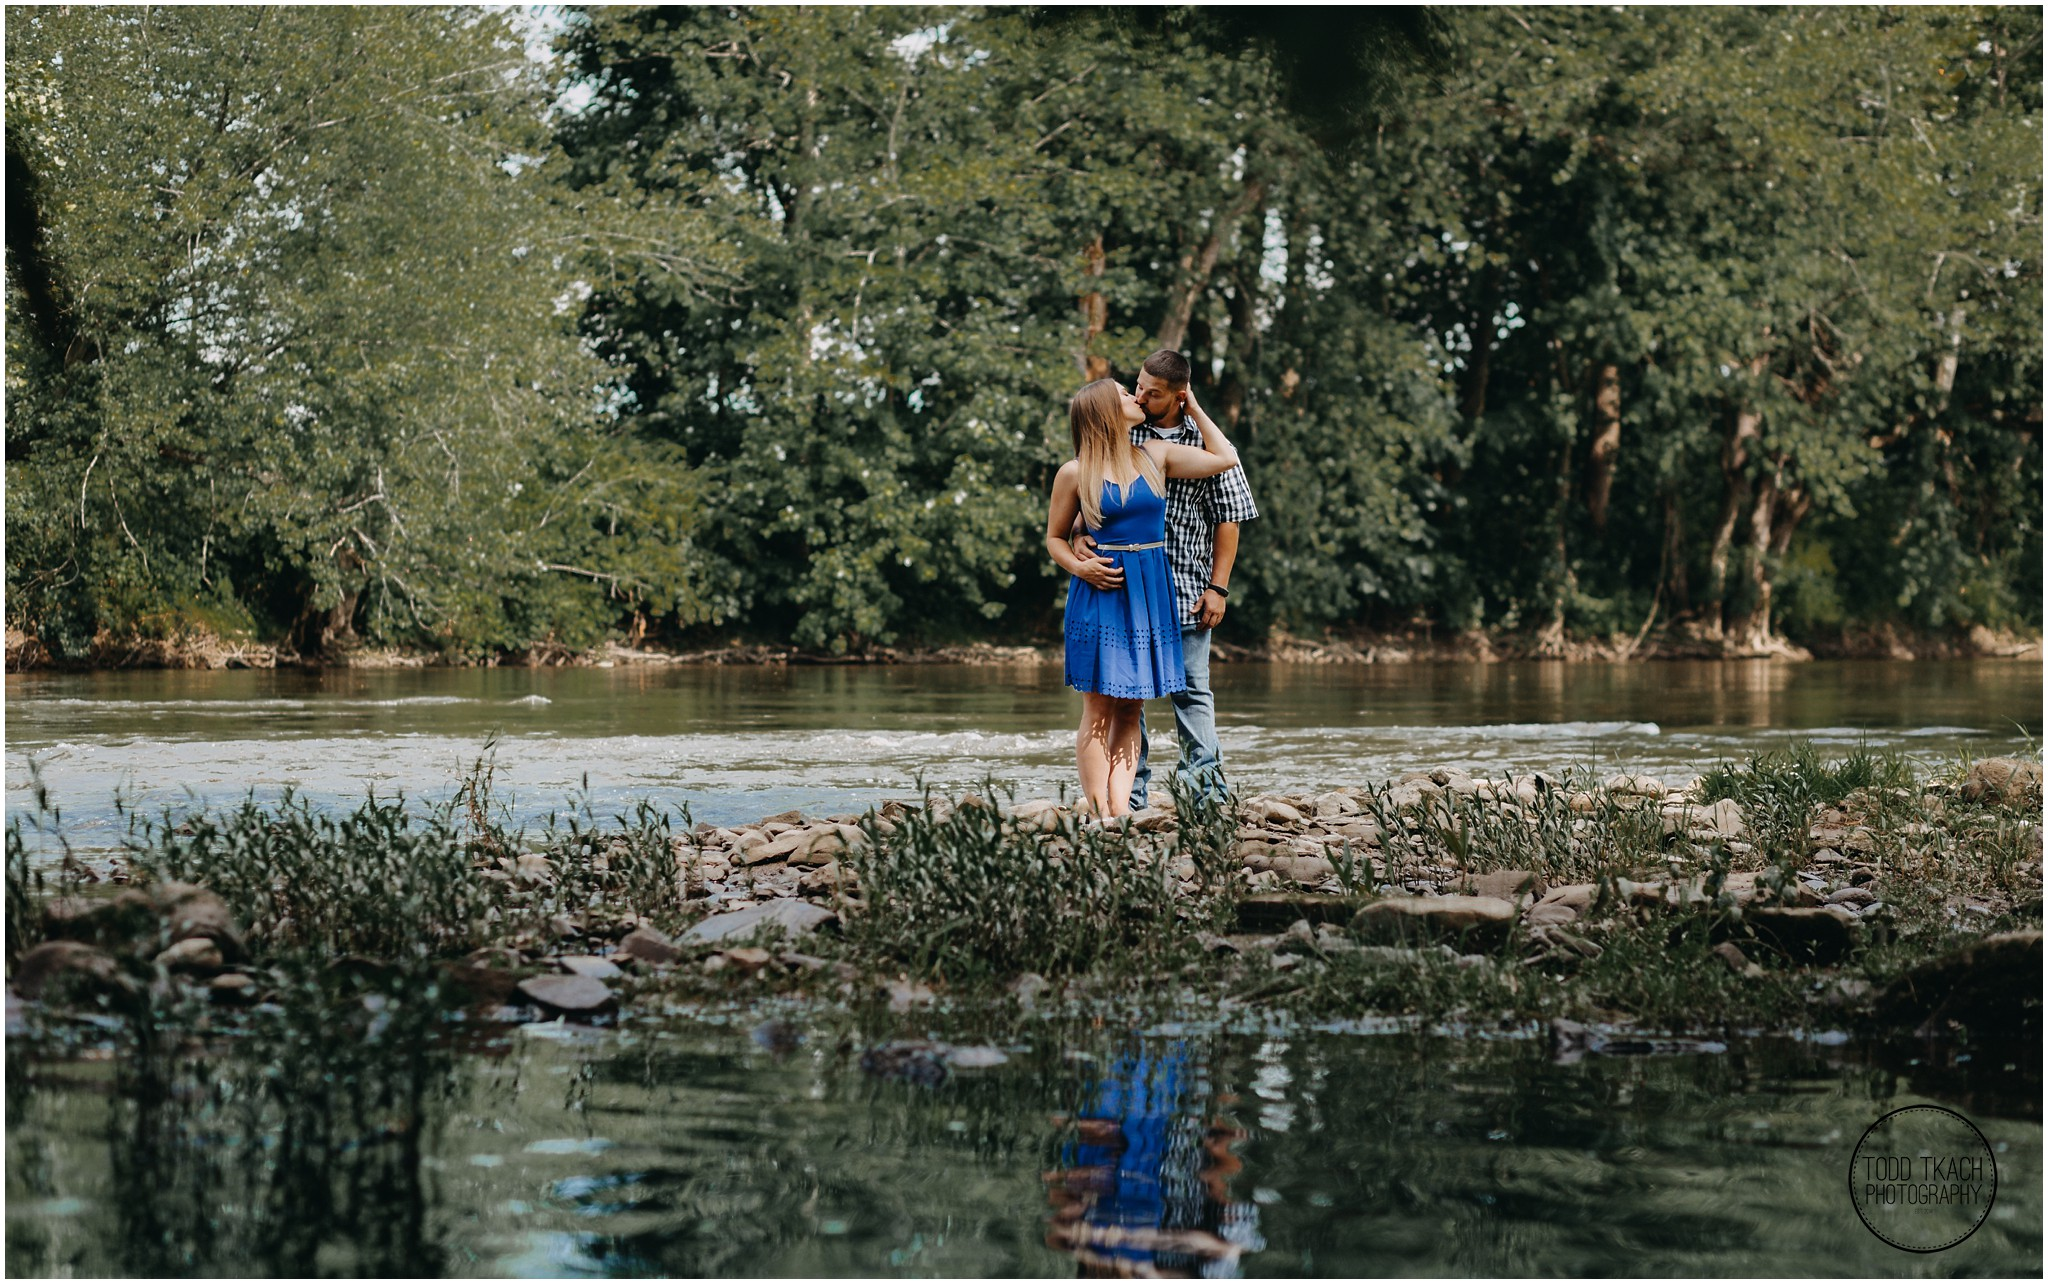 Kim & Brandon Engagement - Creek Kiss Portrait